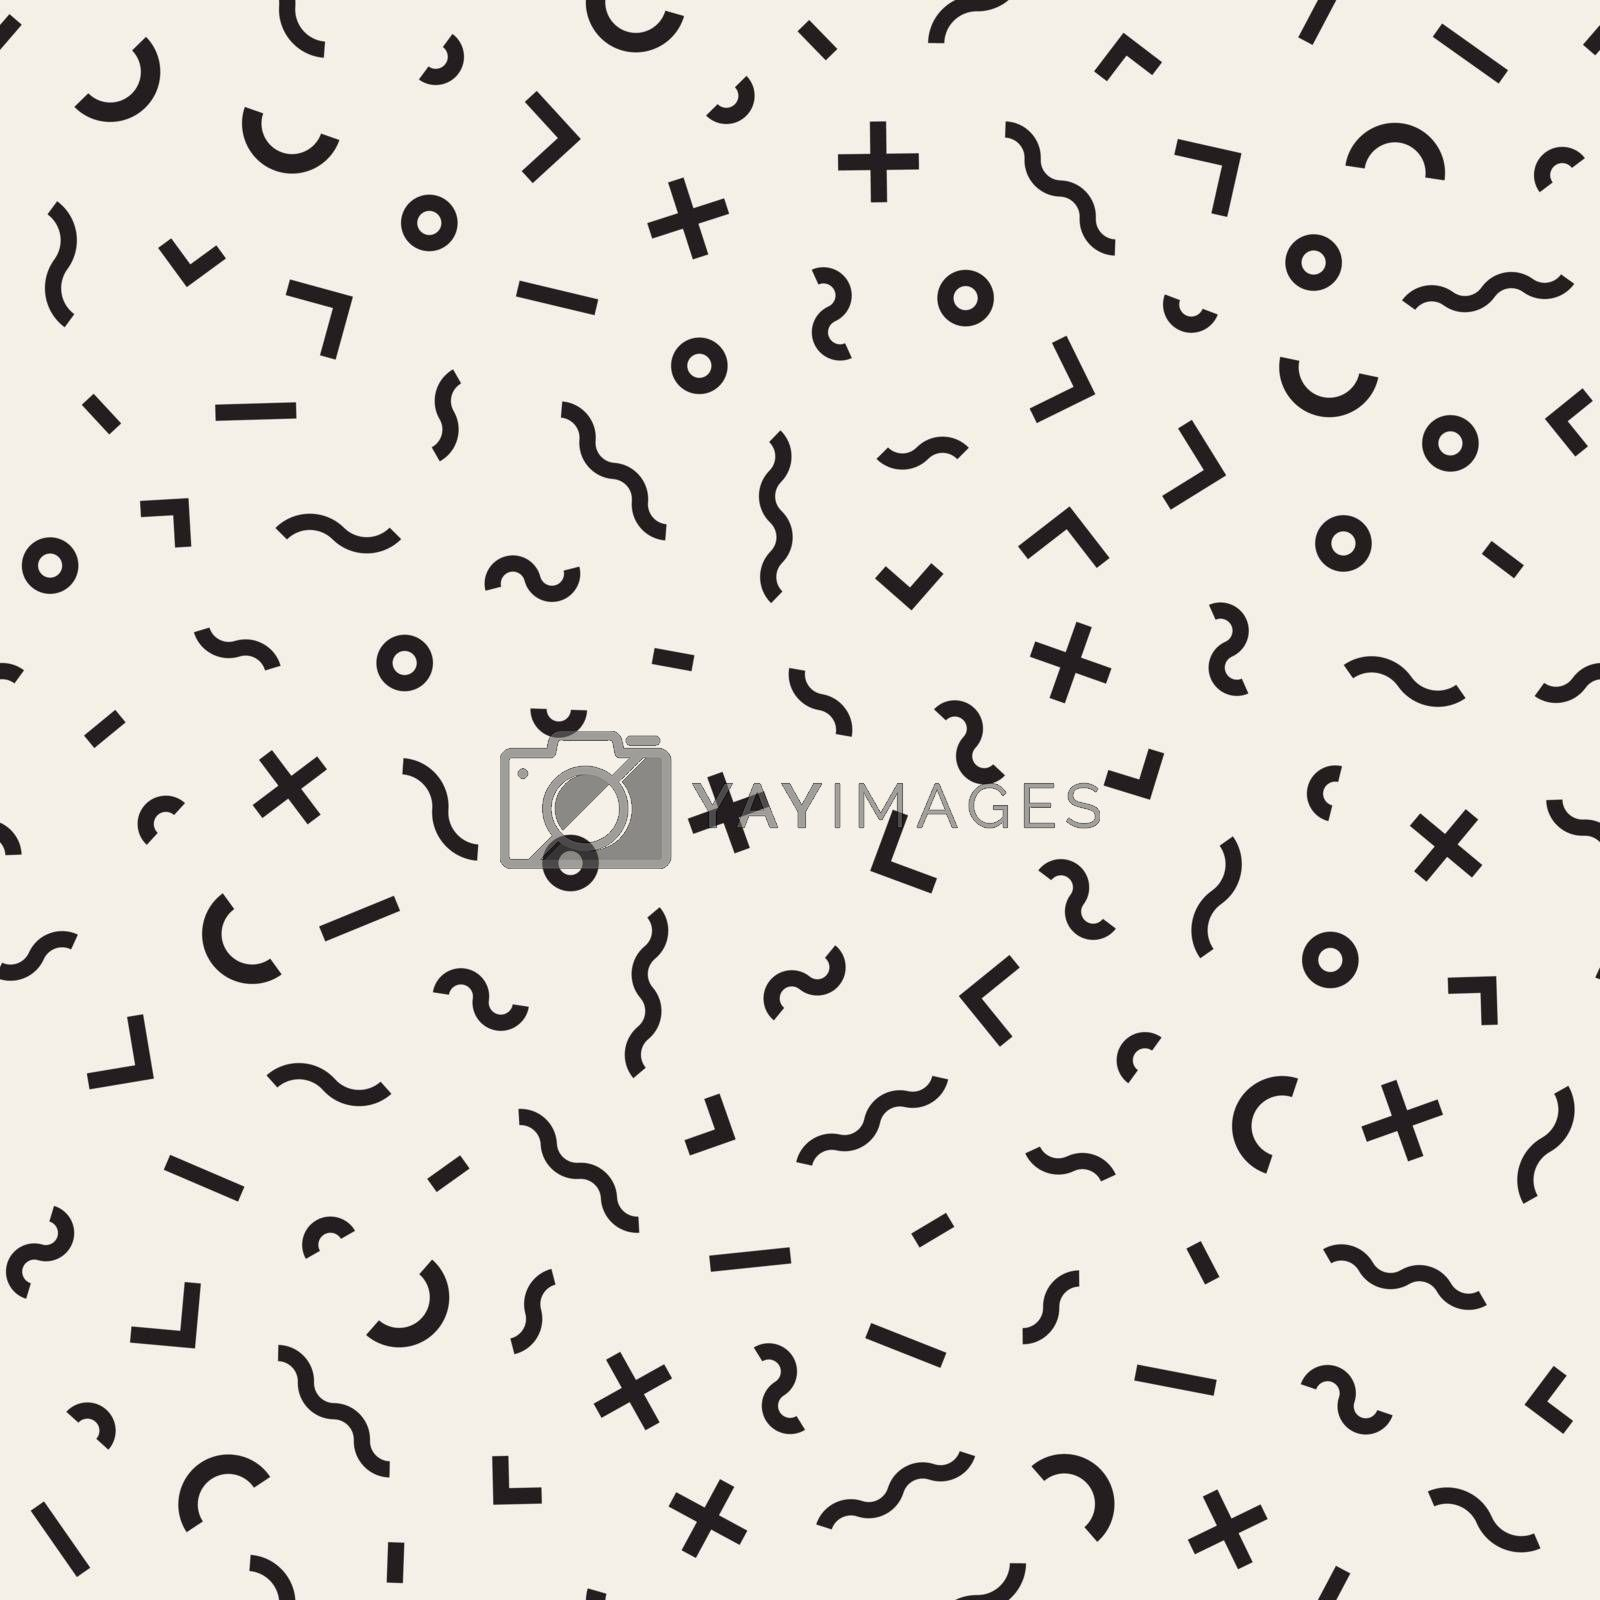 Vector Seamless Black And White Jumble Shapes Pattern. Abstract Geometric Background Design